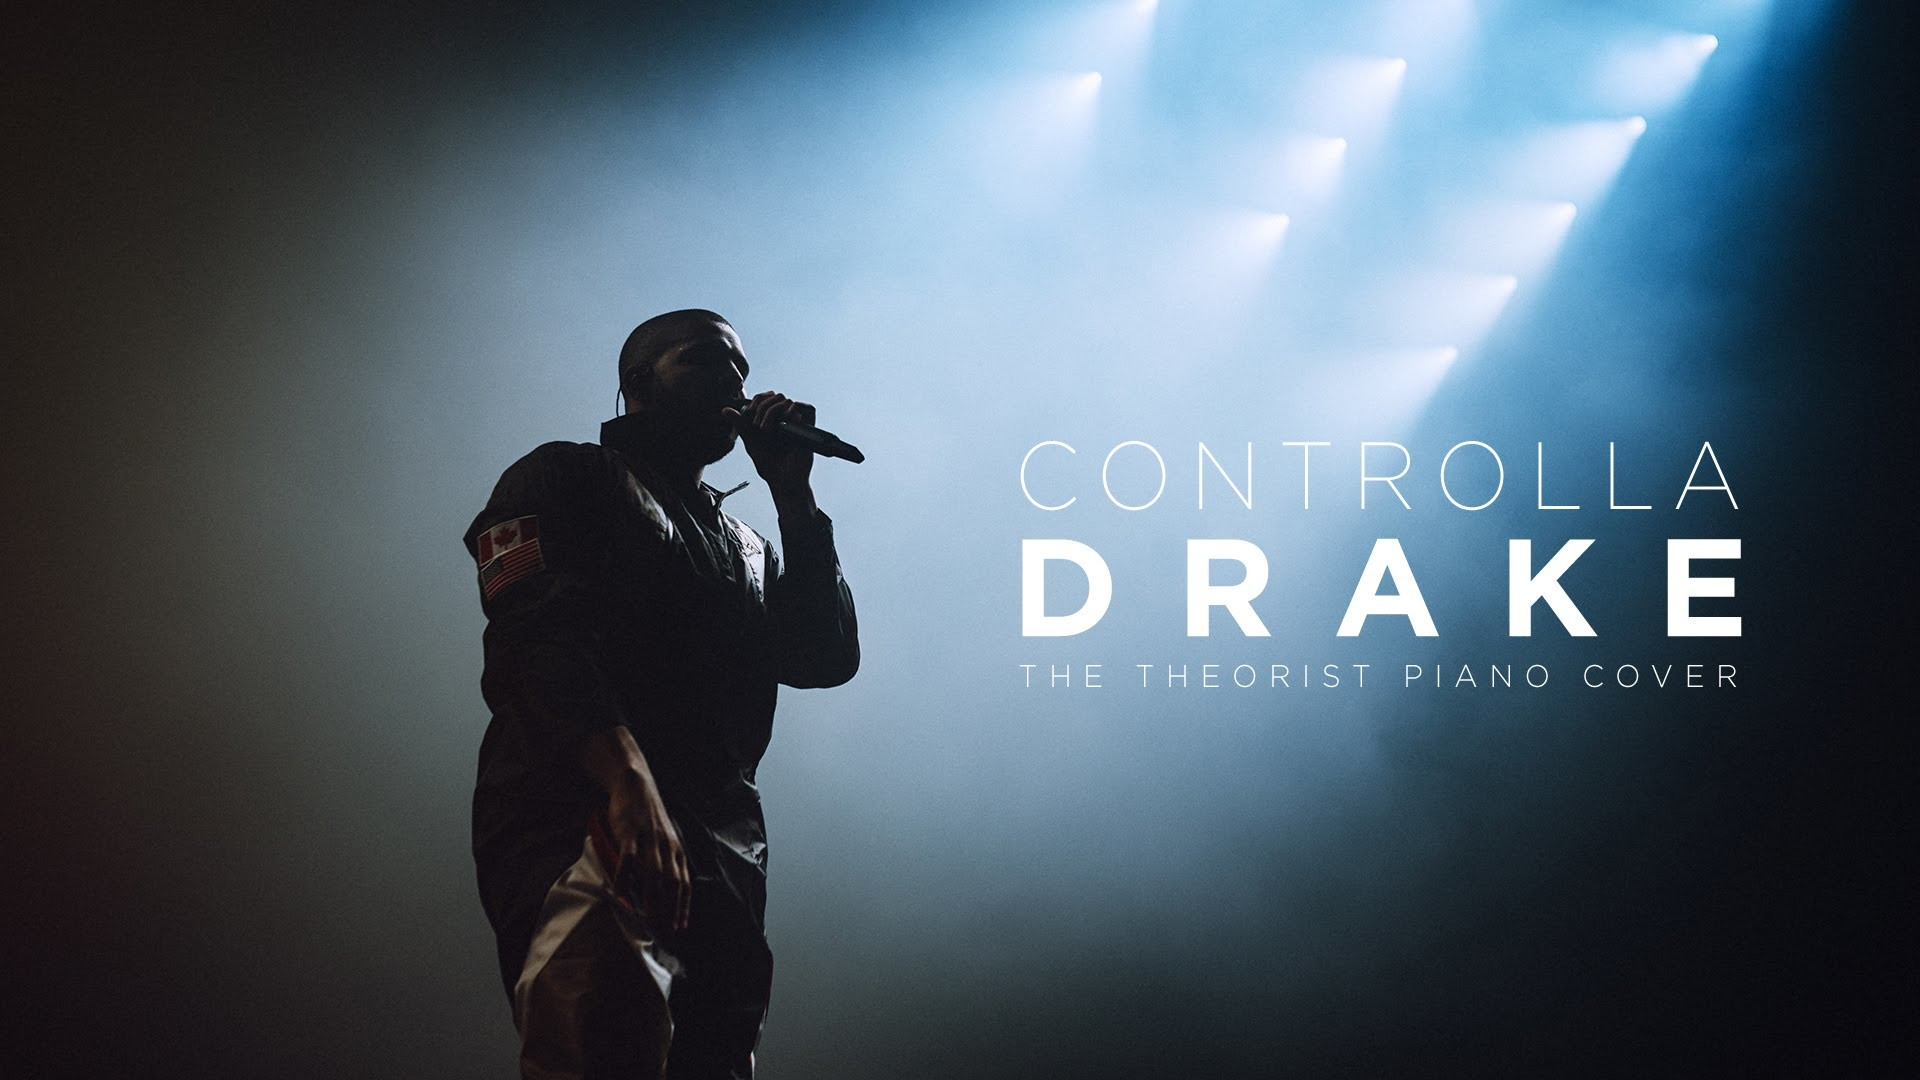 May 31 LISTEN: DRAKE'S 'CONTROLLA' GETS DREAMY PIANO COVER BY THE THEORIST